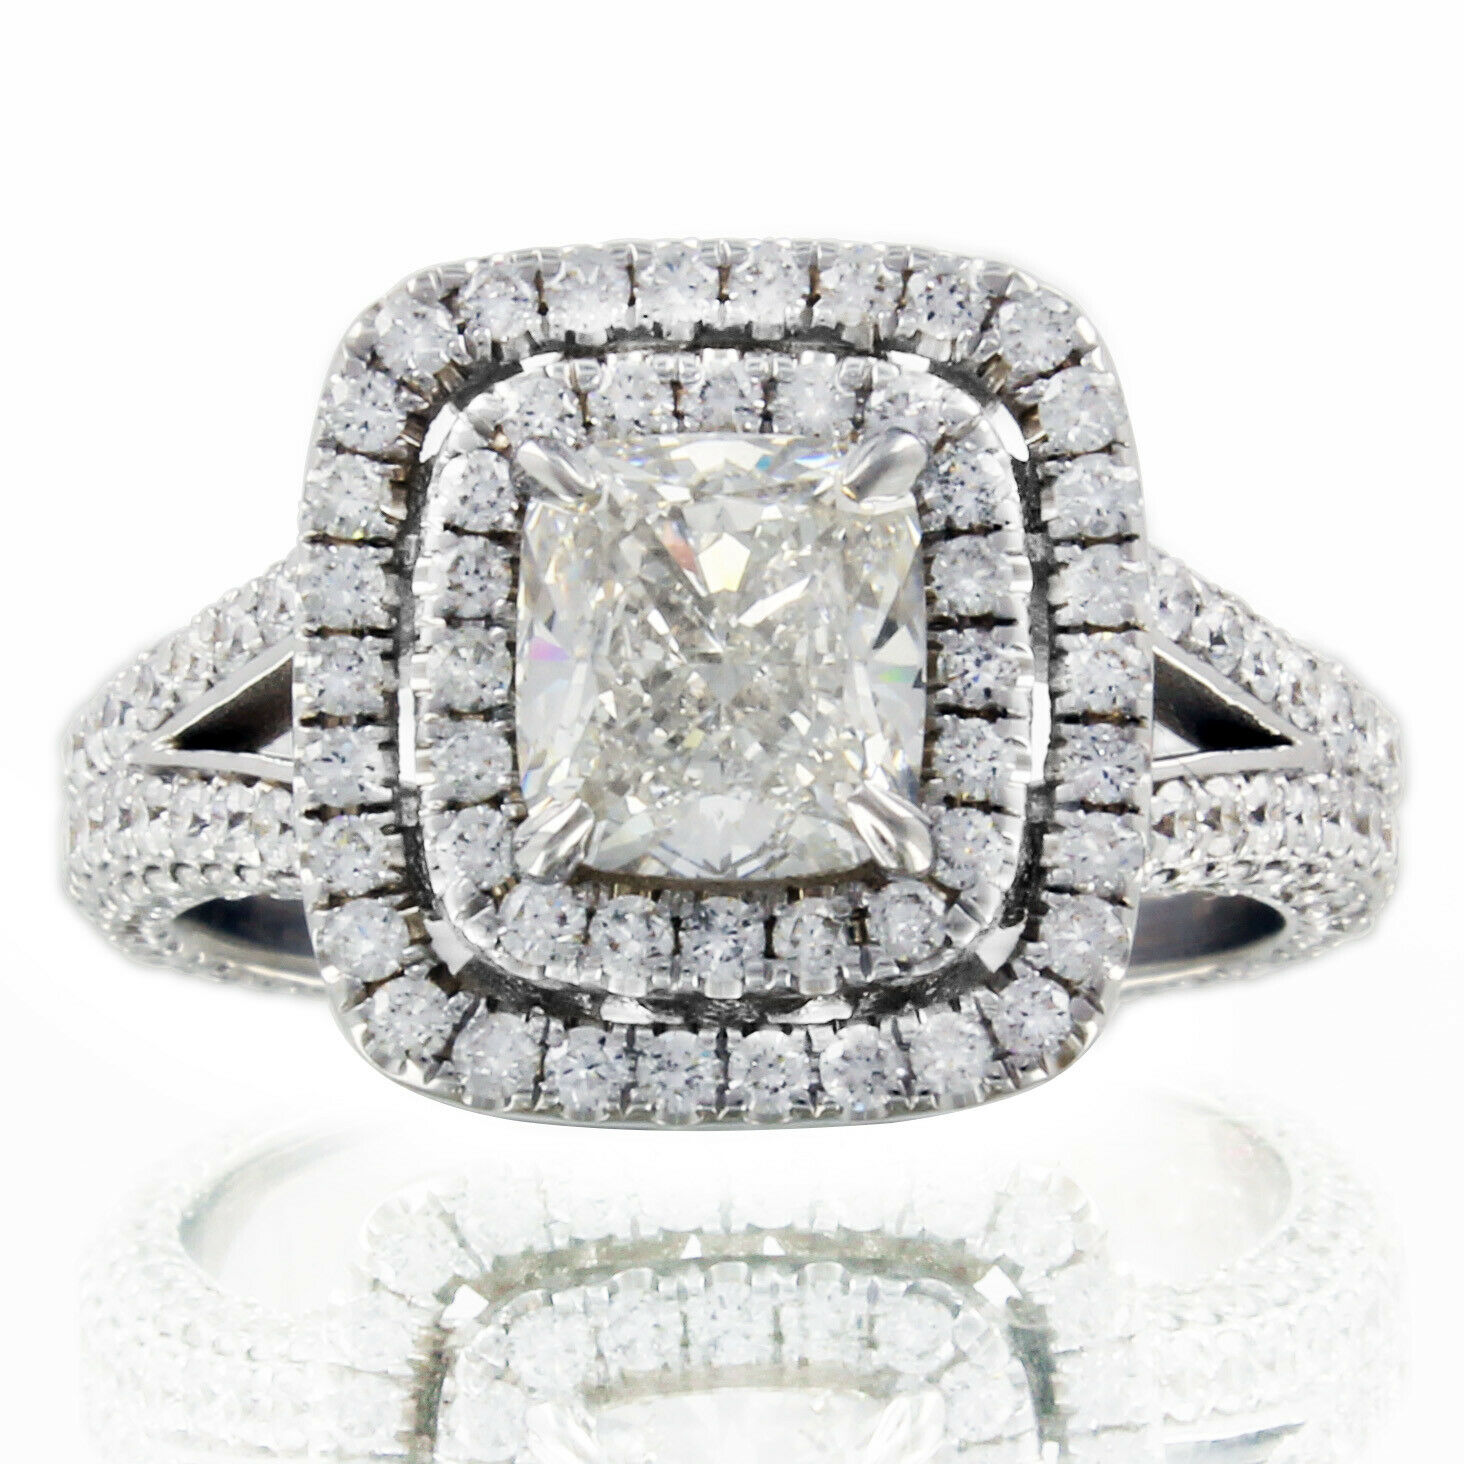 GIA Certified Diamond Engagement Ring 4.62 carat Cushion Cut Double Halo 18k